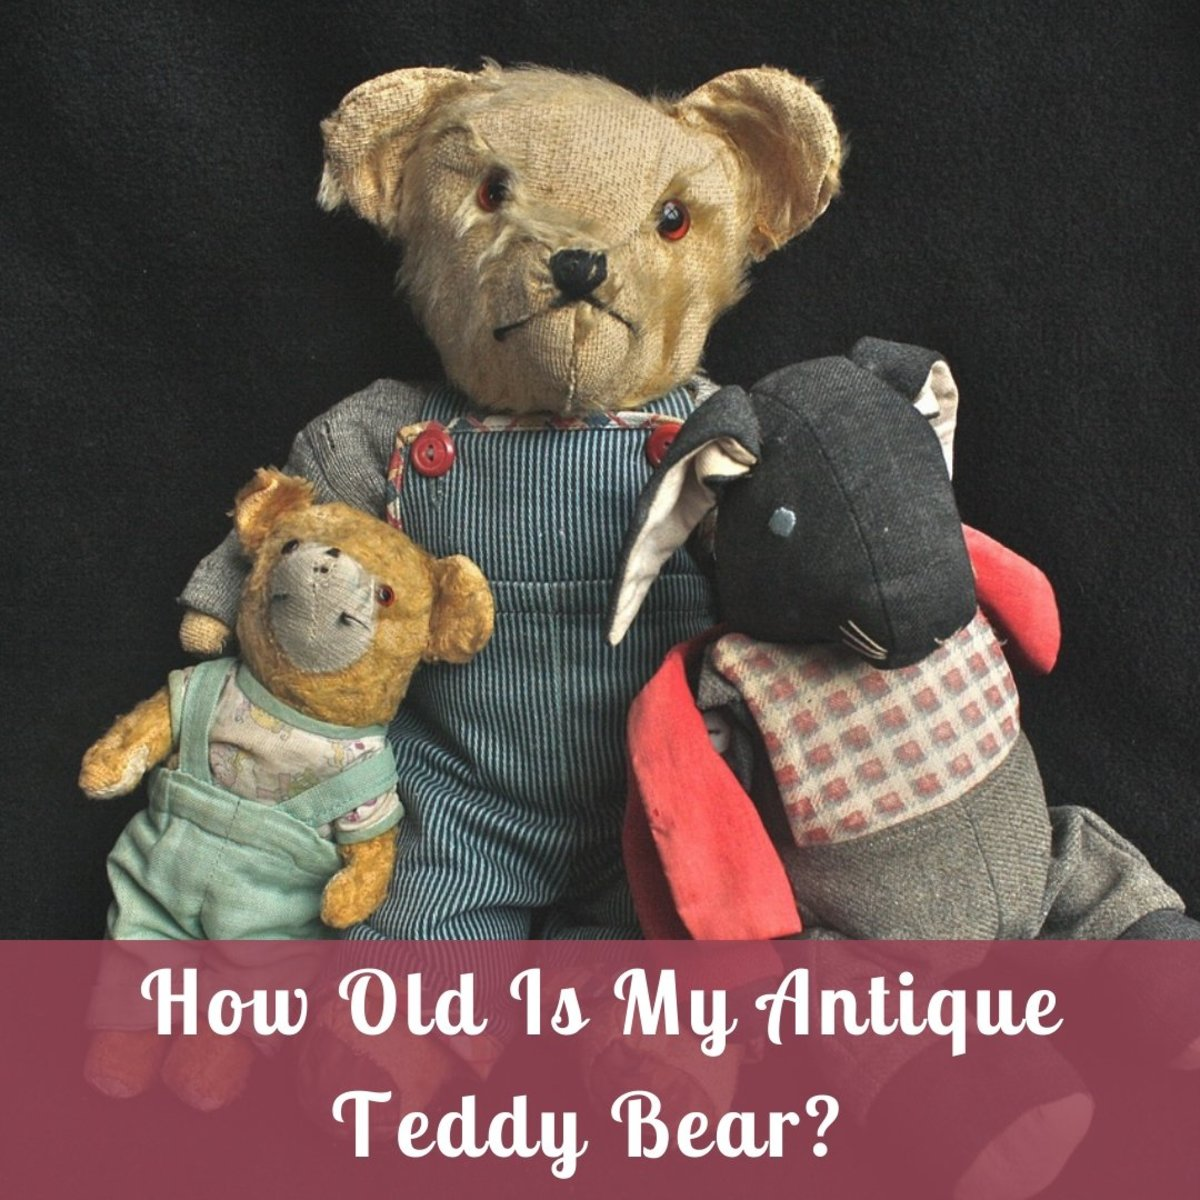 When buying vintage or antique teddy bears, it is important to learn the identifying features that help to date them.